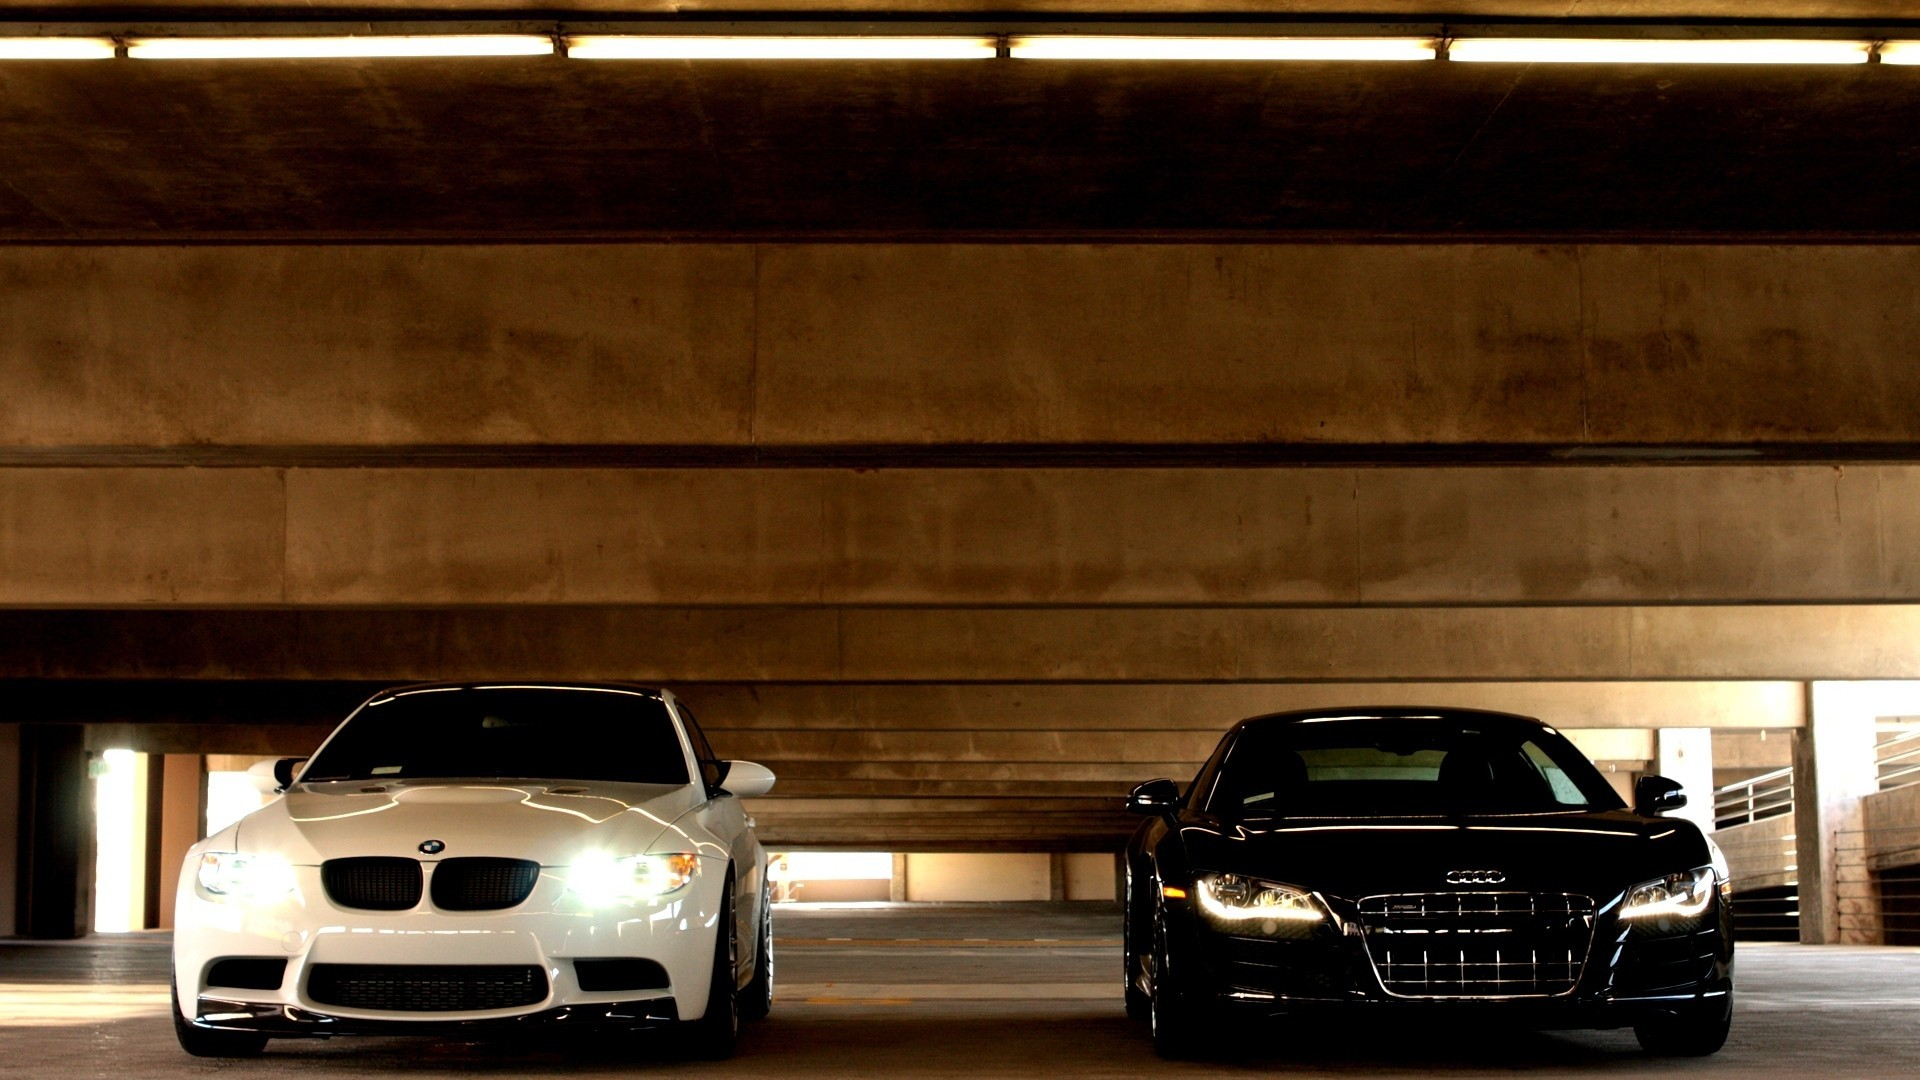 Bmw Headlights Night Wallpaper Www Imgkid Com The